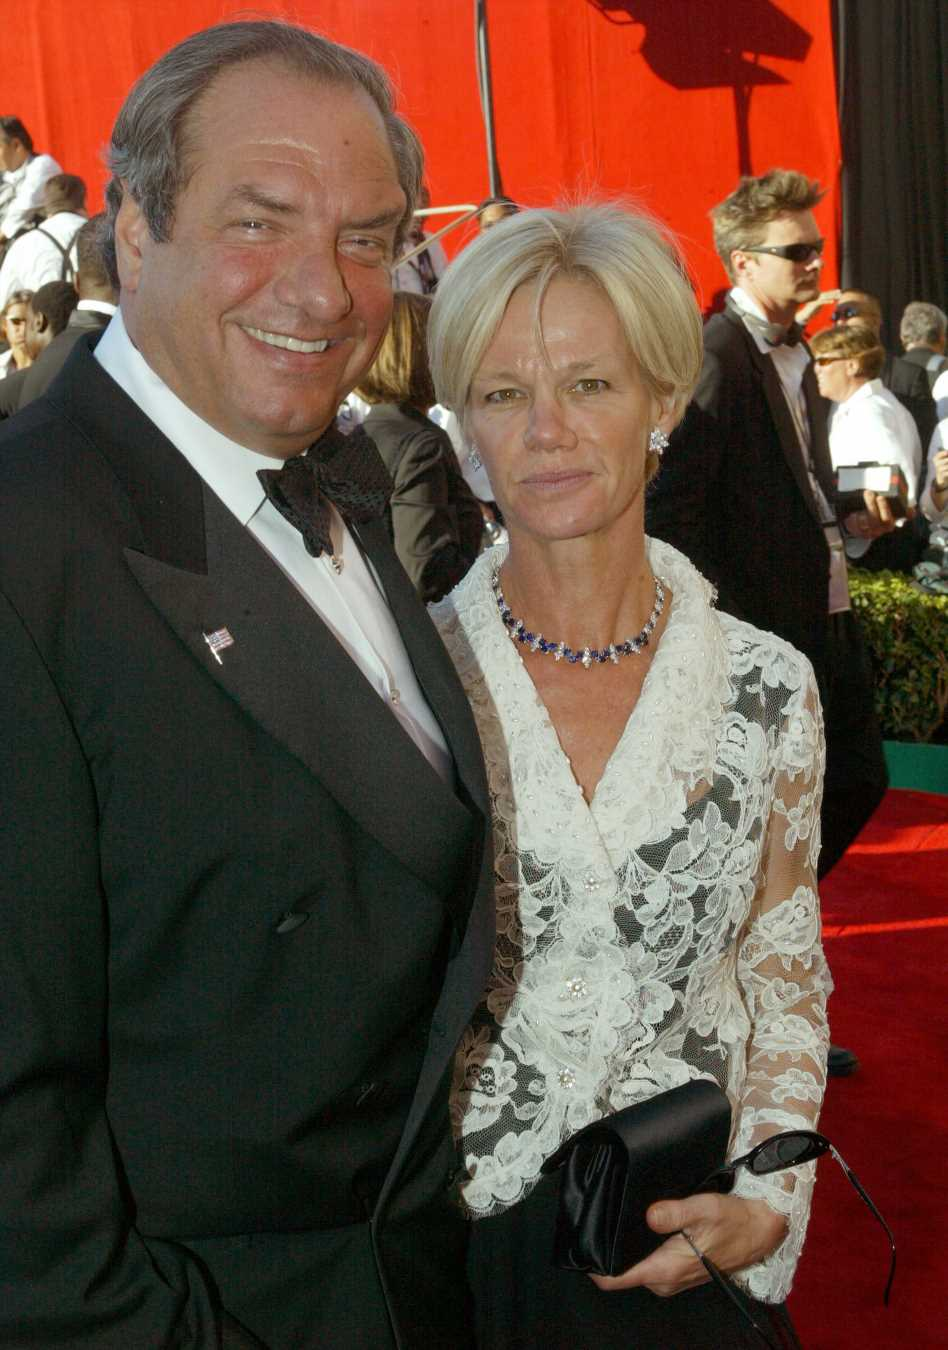 Dick Wolf's Ex Loses Appeal Claiming She Was Tricked Into Signing Settlement Before $1B Payday